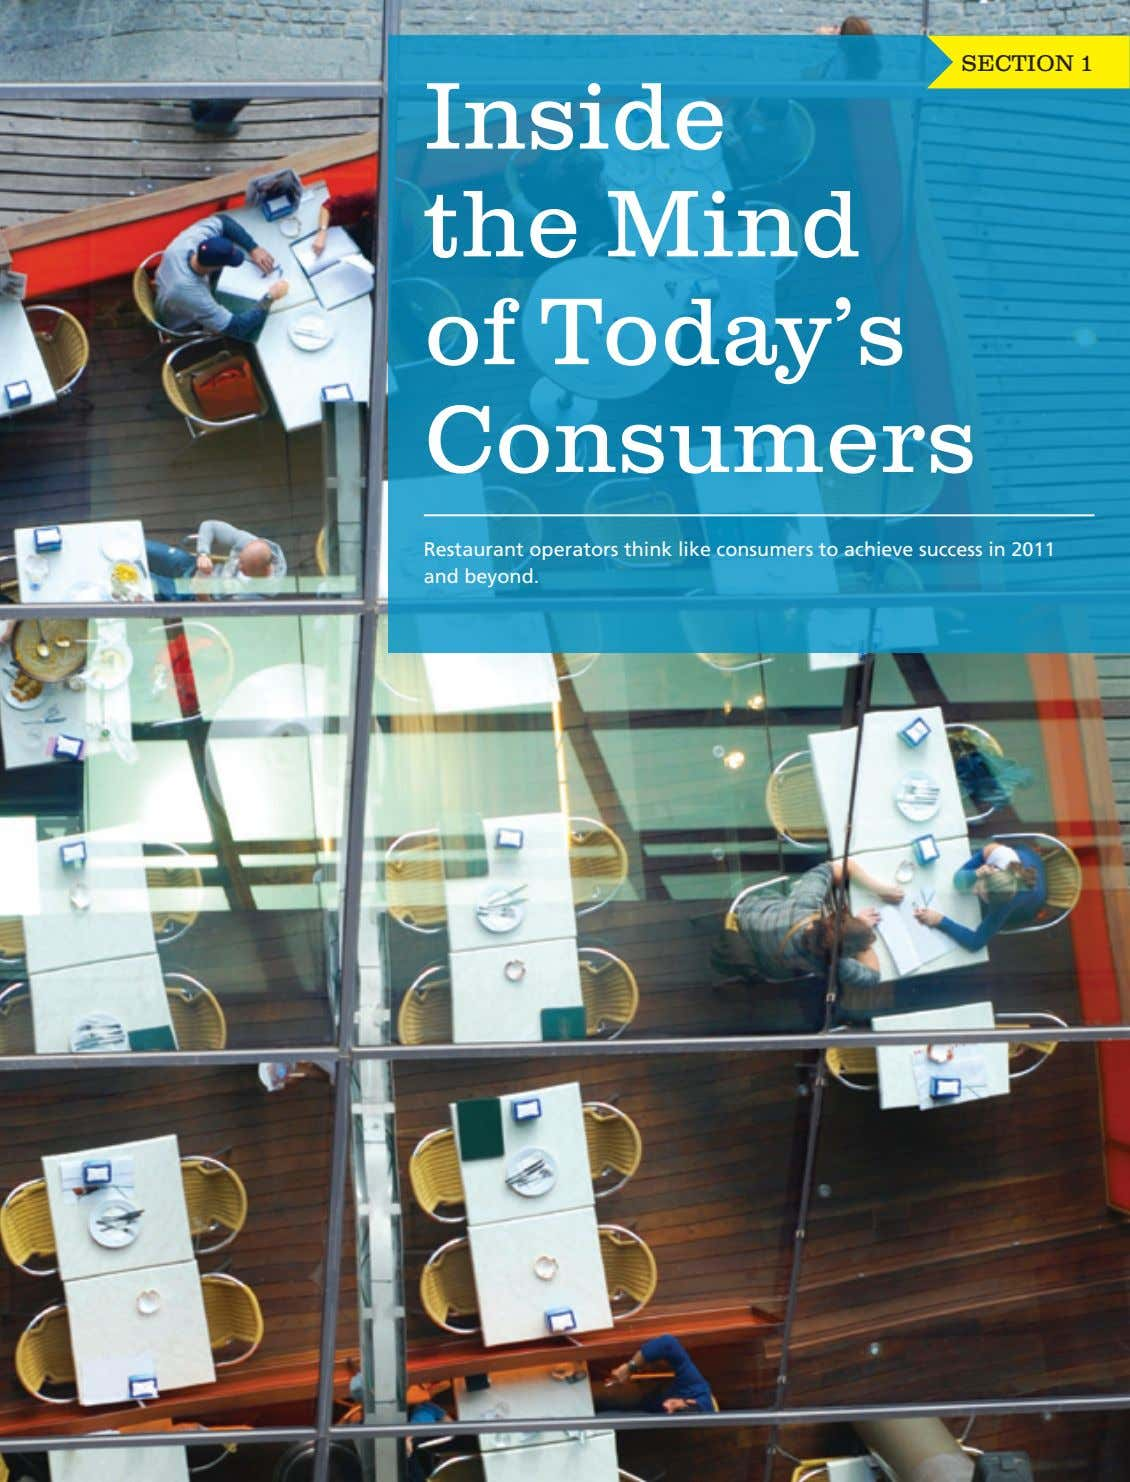 SECTION 1 Inside the Mind of Today's Consumers Restaurant operators think like consumers to achieve